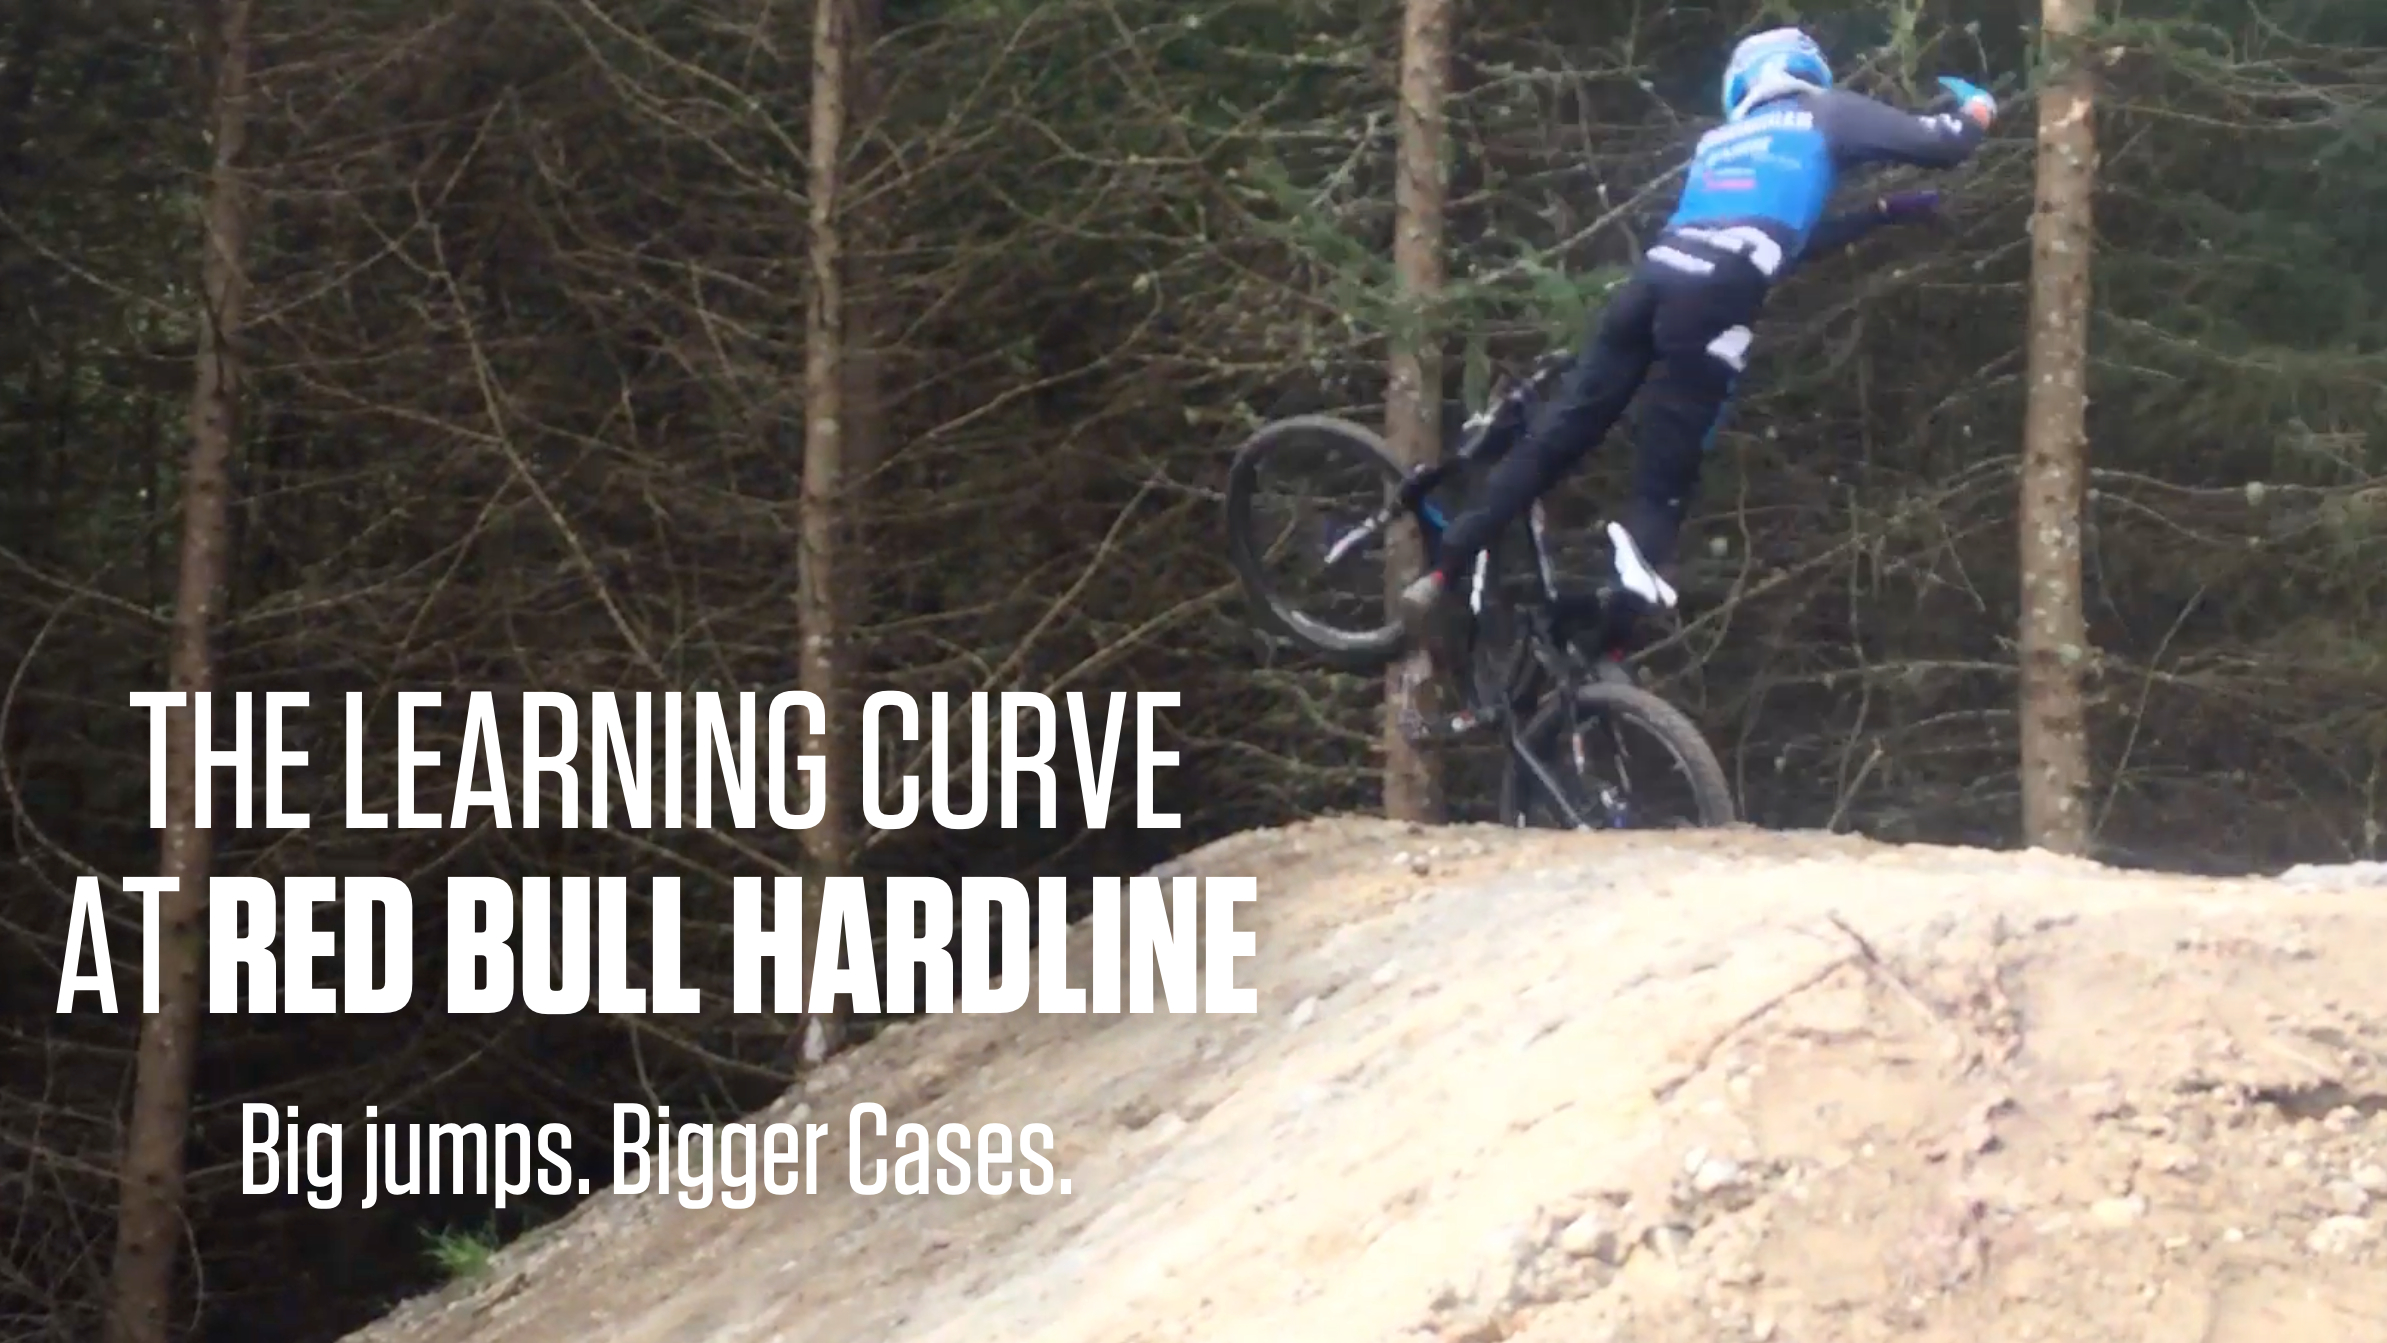 Big Jumps, Bigger Cases - The Learning Curve at Red Bull Hardline